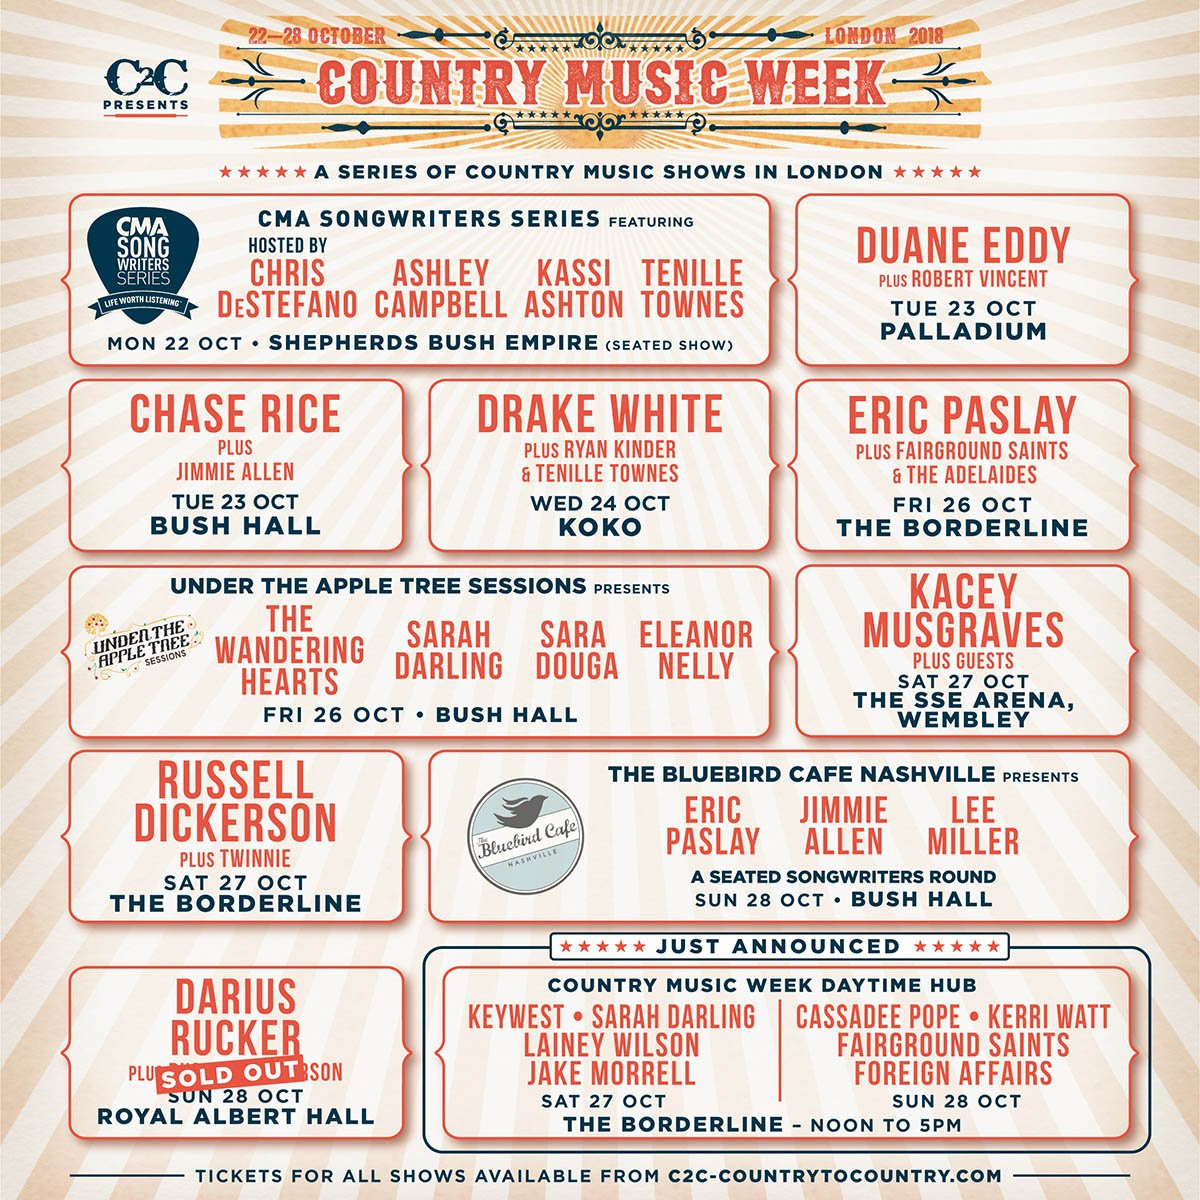 Country Music Week (@CountryMusicWK) | Twitter